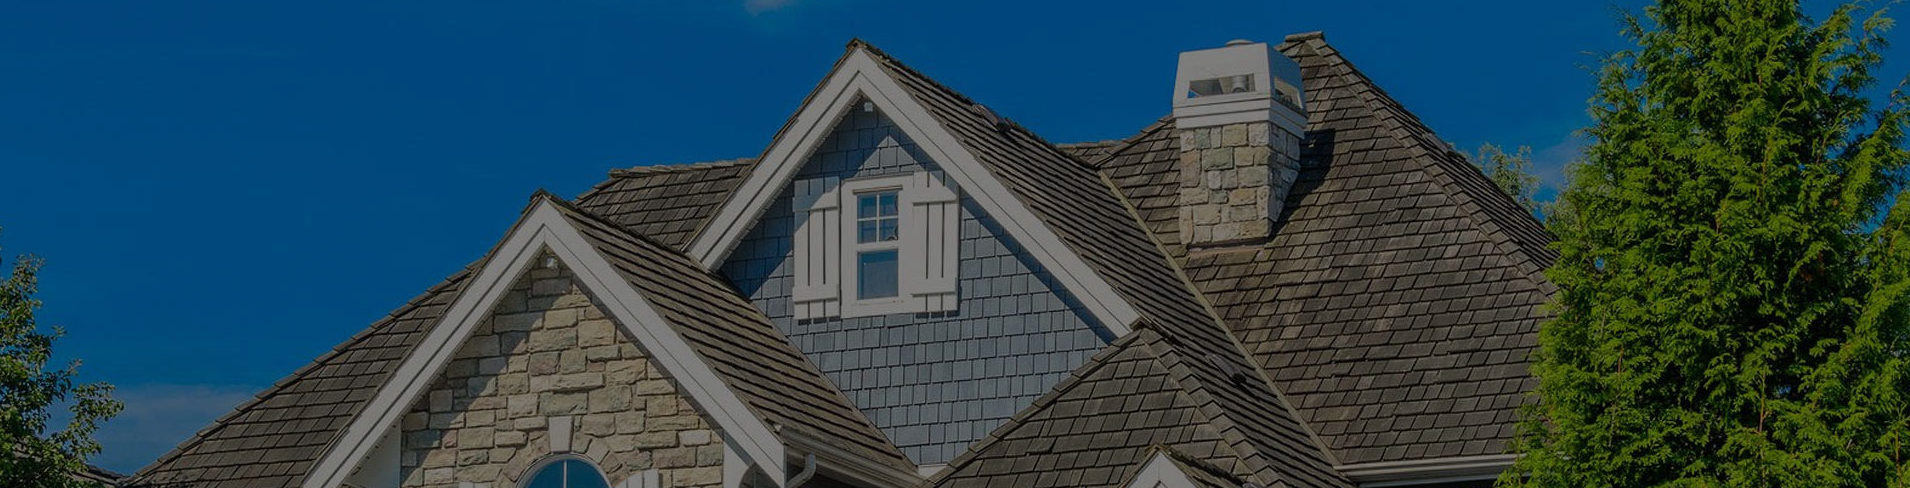 Roofing sales and project management